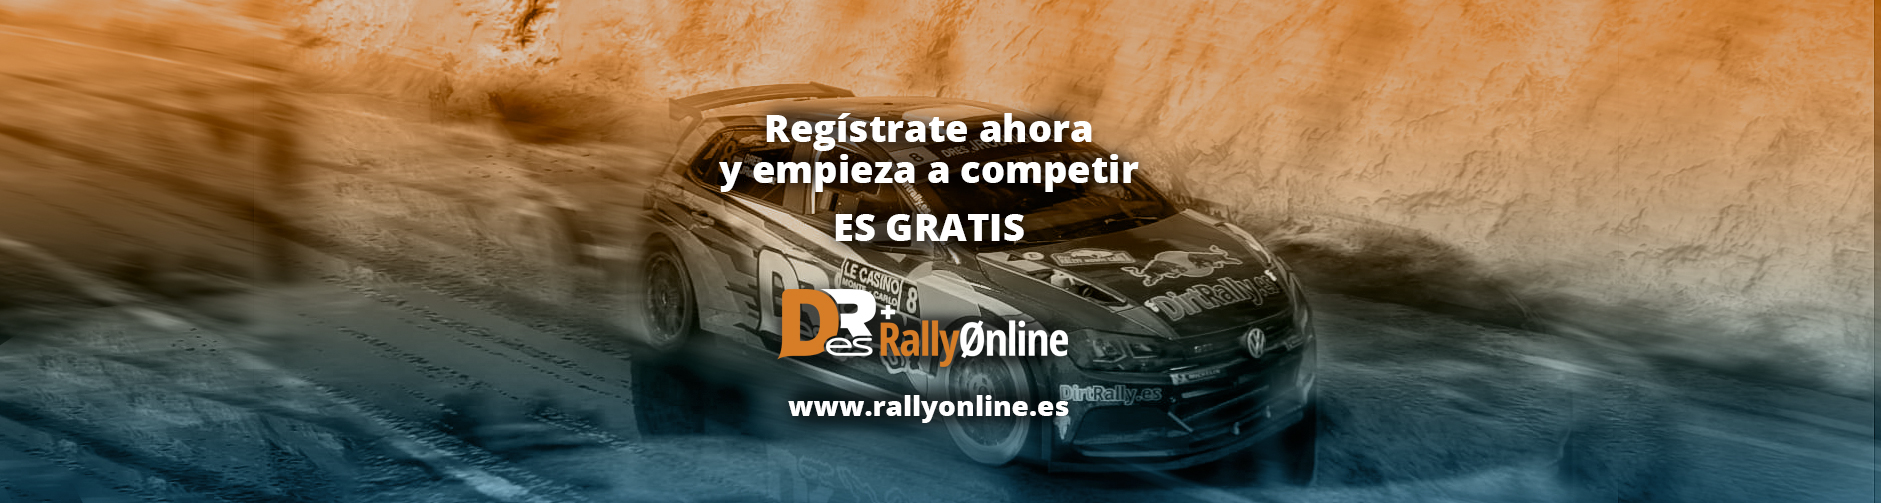 competiciones de rallyes online con dirt rally richard Burns rally y más